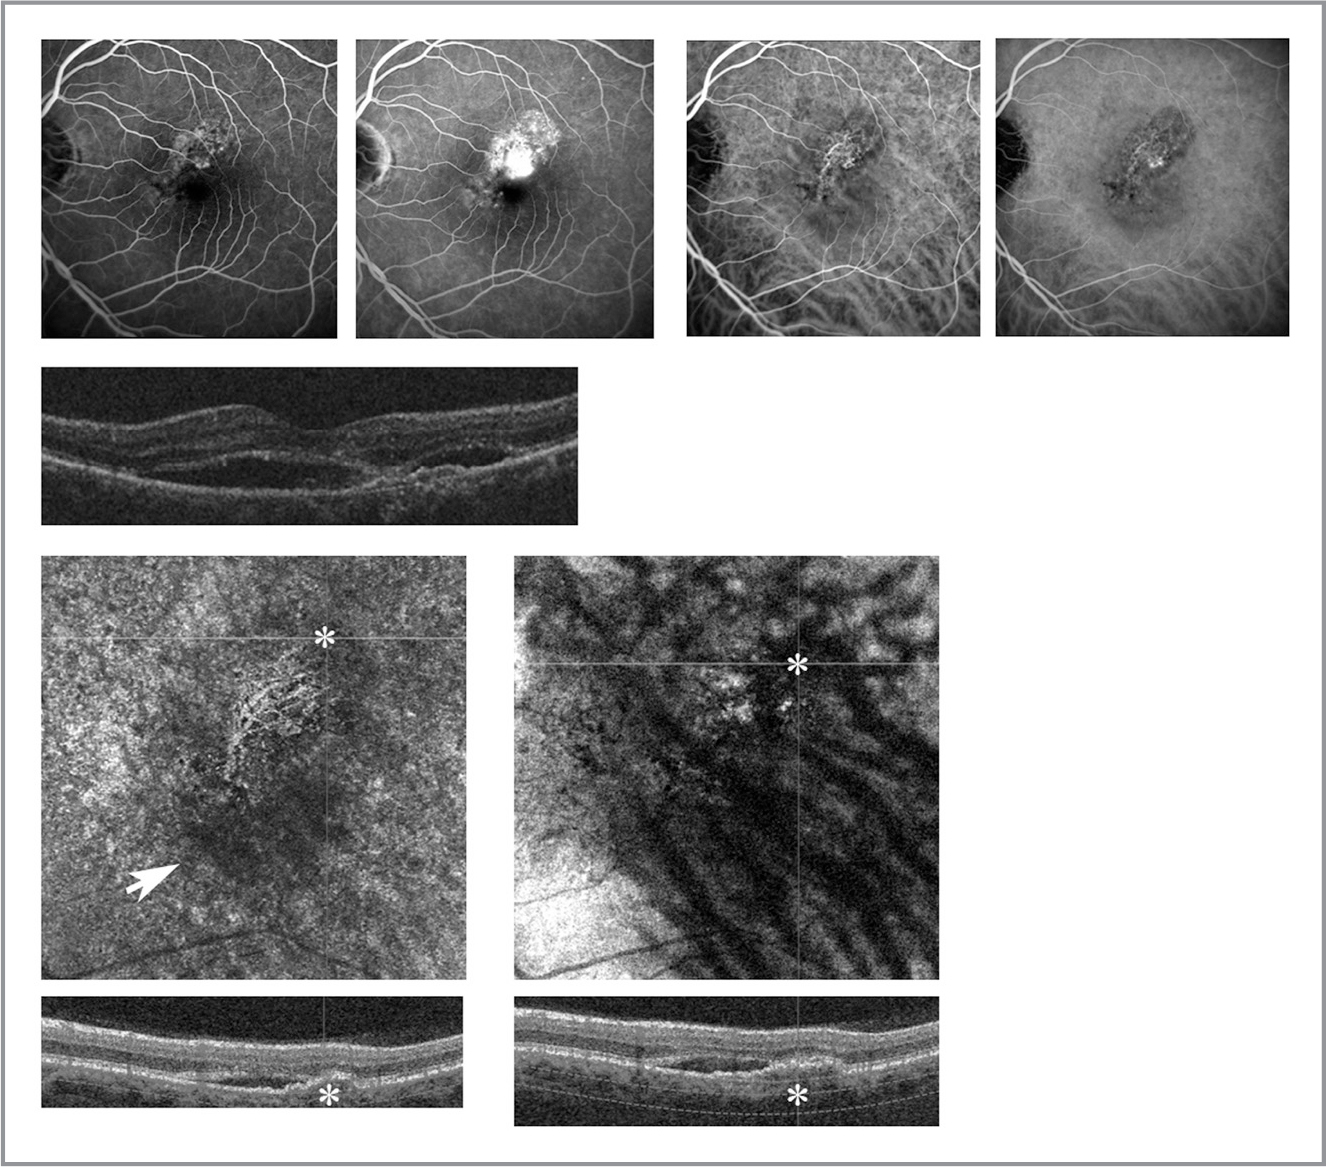 Multimodal imaging of chronic central serous chorioretinopathy (CCSC). Top row: Fluorescein angiography demonstrating superior parafoveal early hyperfluorescence (first panel) with late leakage (second panel) in the left eye of a patient with CCSC. Early punctate staining is also visible at the nasal parafovea. Indocyanine green (ICG) angiography clearly delineating a type I choroidal neovascular membrane (CNVM) (third and fourth panel). Second row: B-scan of superior paracentral macula demonstrating subretinal fluid and an irregular, flat pigment epithelial detachment (PED). En face optical coherence tomography angiography (OCTA) with choriocapillaris segmentation (third row, left) demonstrating central flow void (white arrow) with CNVM, which corresponds poorly to irregular PED (asterisks, third and fourth rows, left). En face OCTA with segmentation of Haller's and Sattler's layers (third row, right) demonstrating focal large vessel dilatations corresponding more closely to irregular PED (asterisks, third and fourth rows, right).